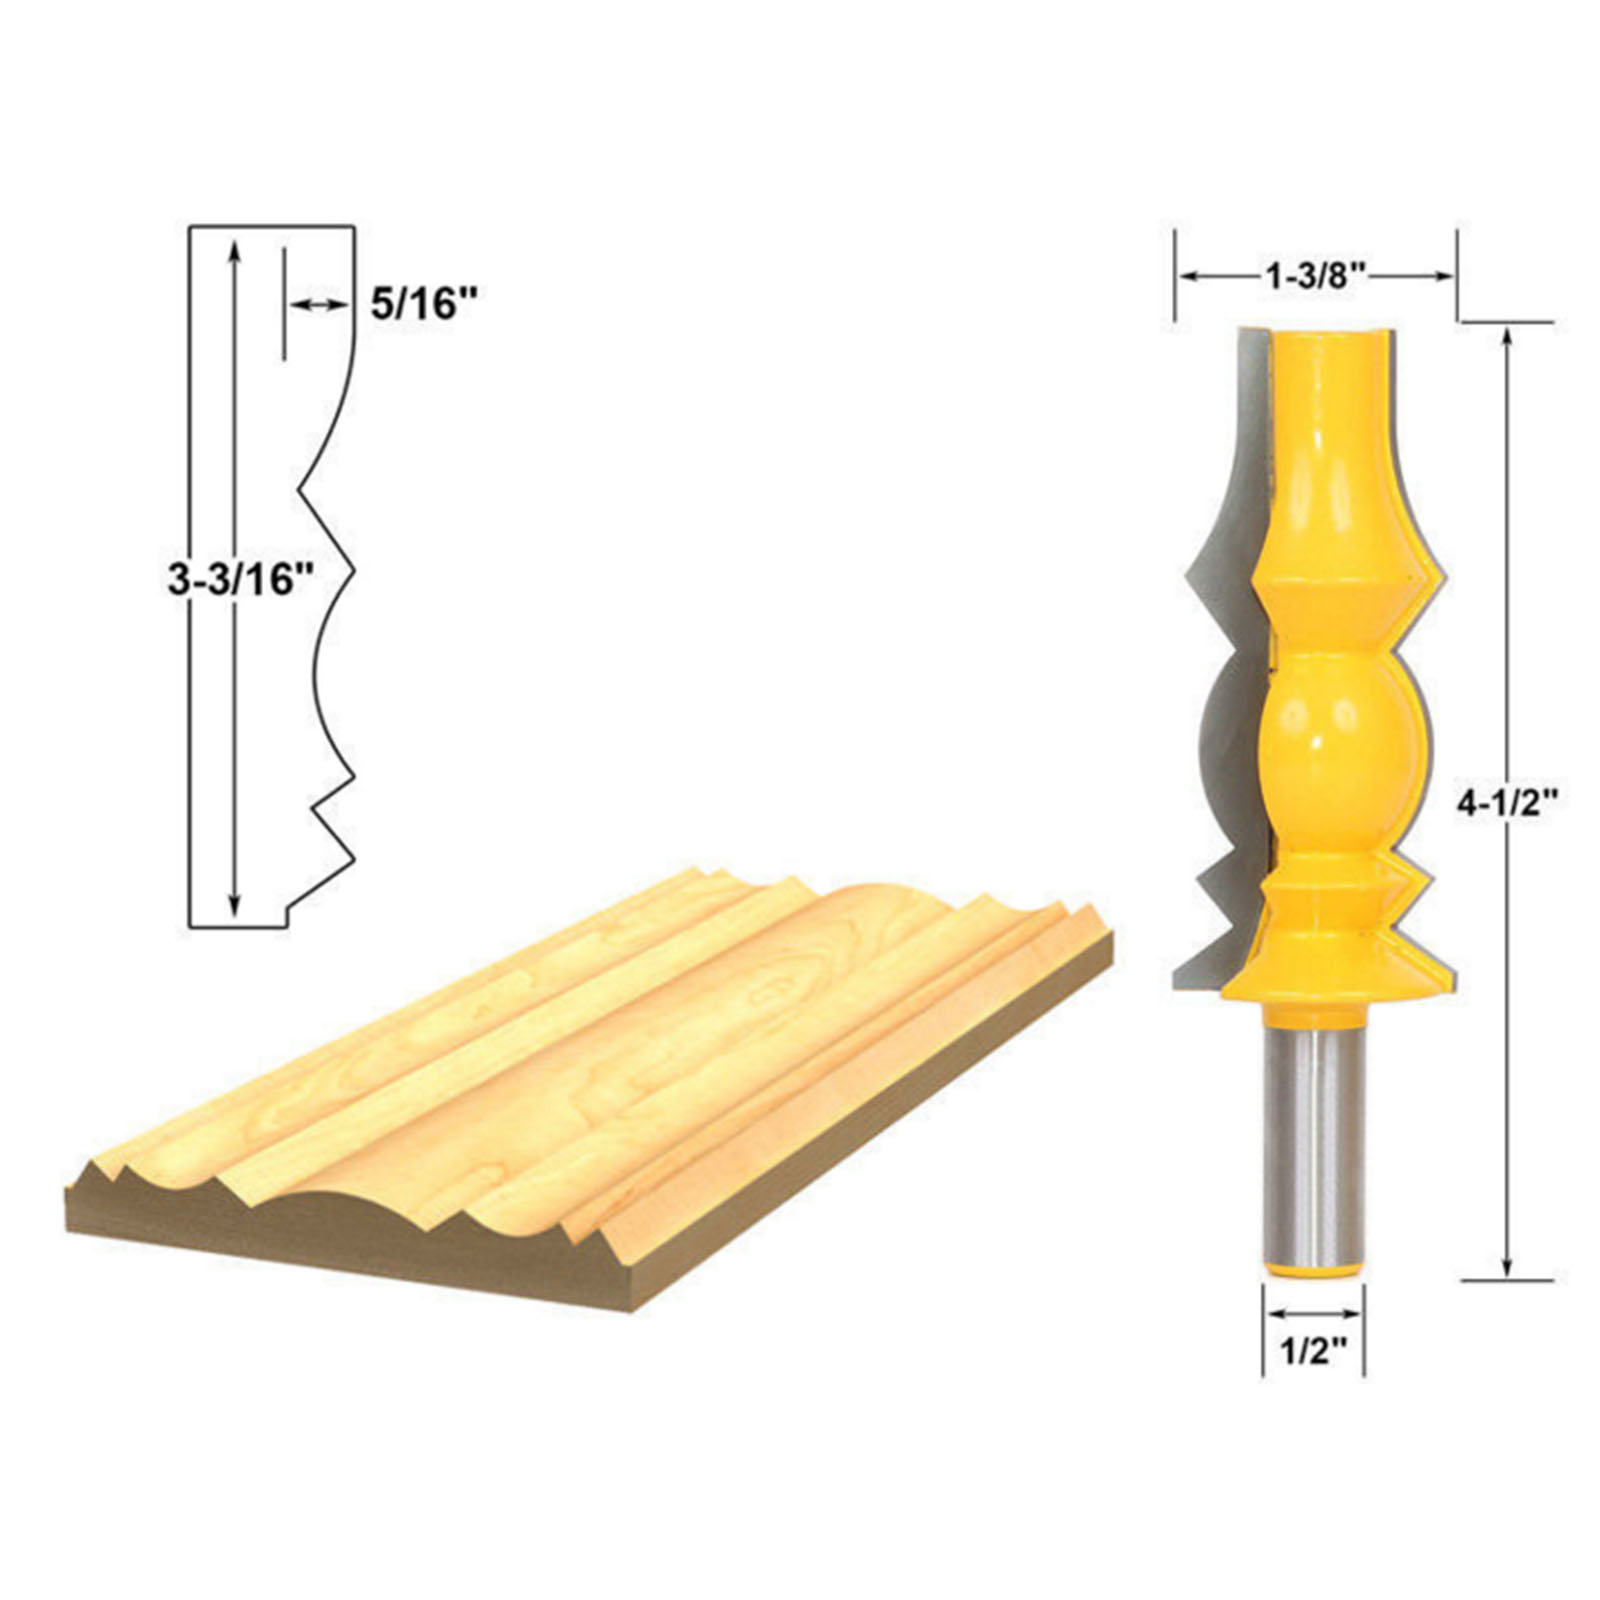 DRELD 1Pc 1/2 Shank 3-3/16'' Reversible Crown Molding Router Bit For Woodworking Milling Cutter Wood Cutting Carpentry Tools jamaica jamaica no problem